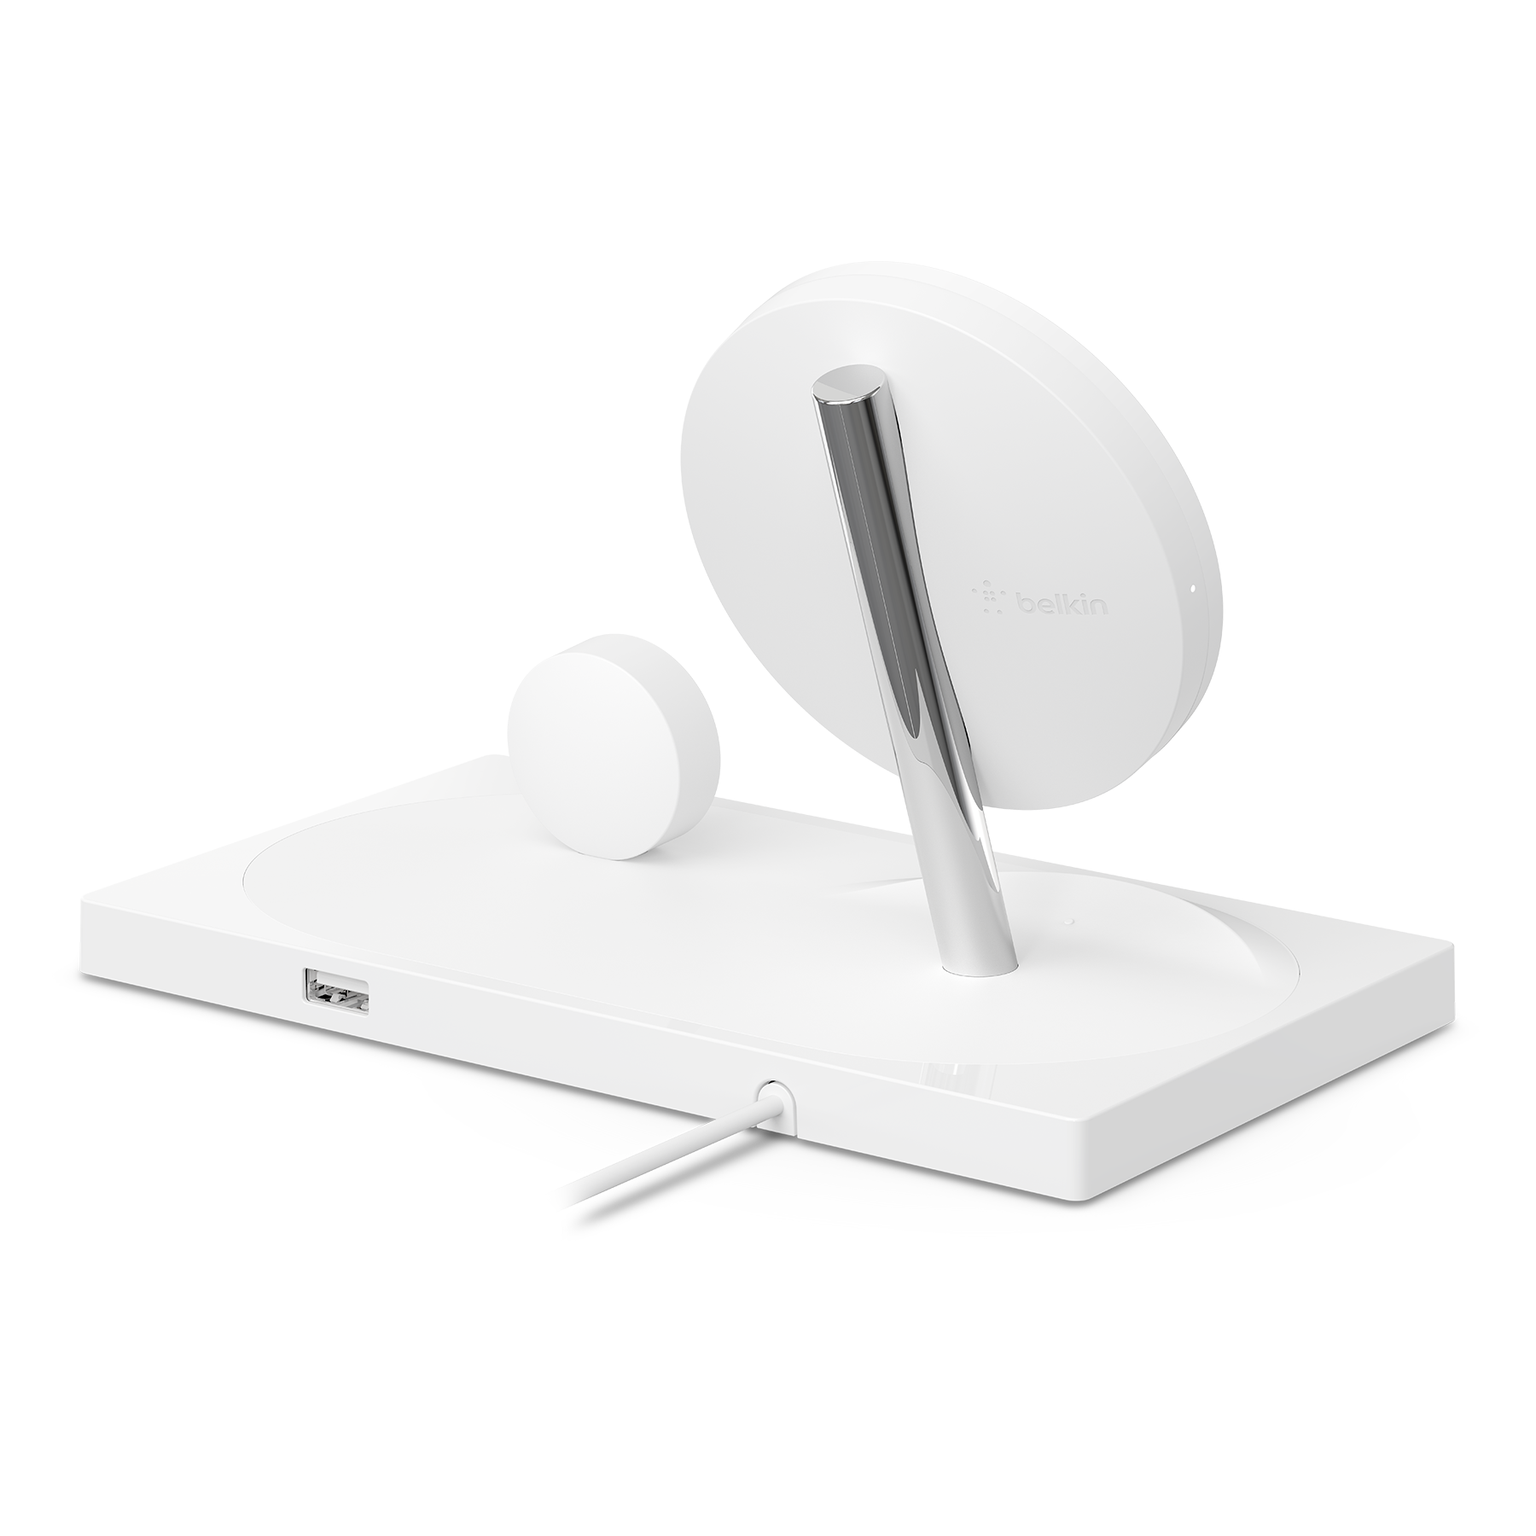 d0a3404026b97a Compatible with iPhone X, XS Max, XR, and 8 Plus, BOOST UP Wireless  Charging Dock will be available in December from Apple and Belkin.